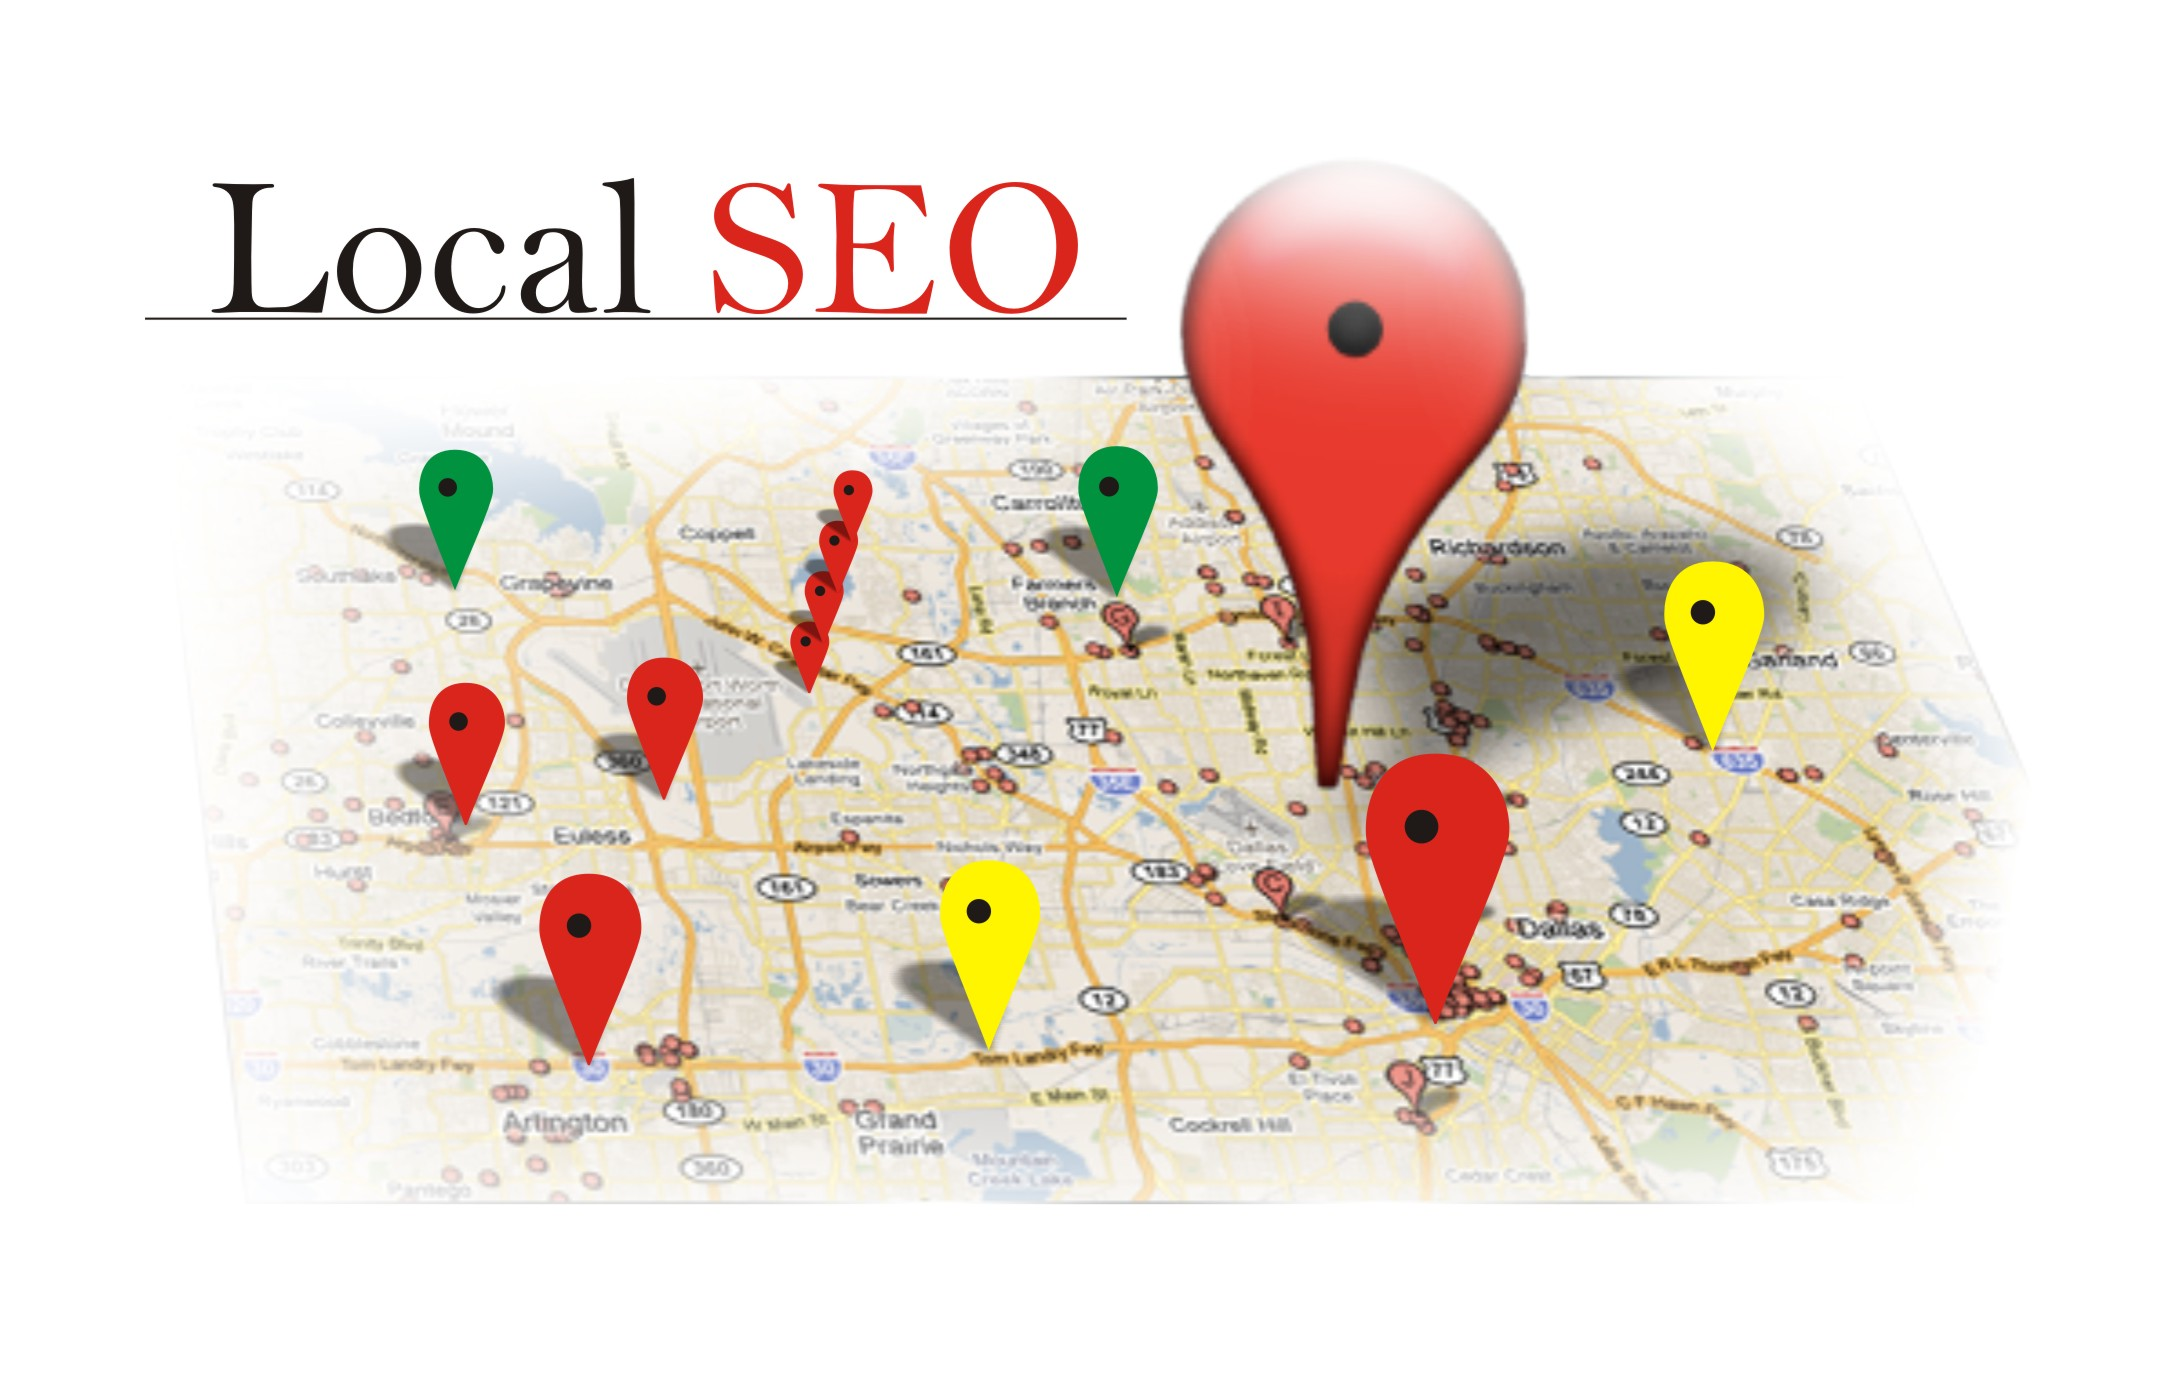 5-things-most-people-forget-about-local-seo.jpg.jpg (2174×1379)